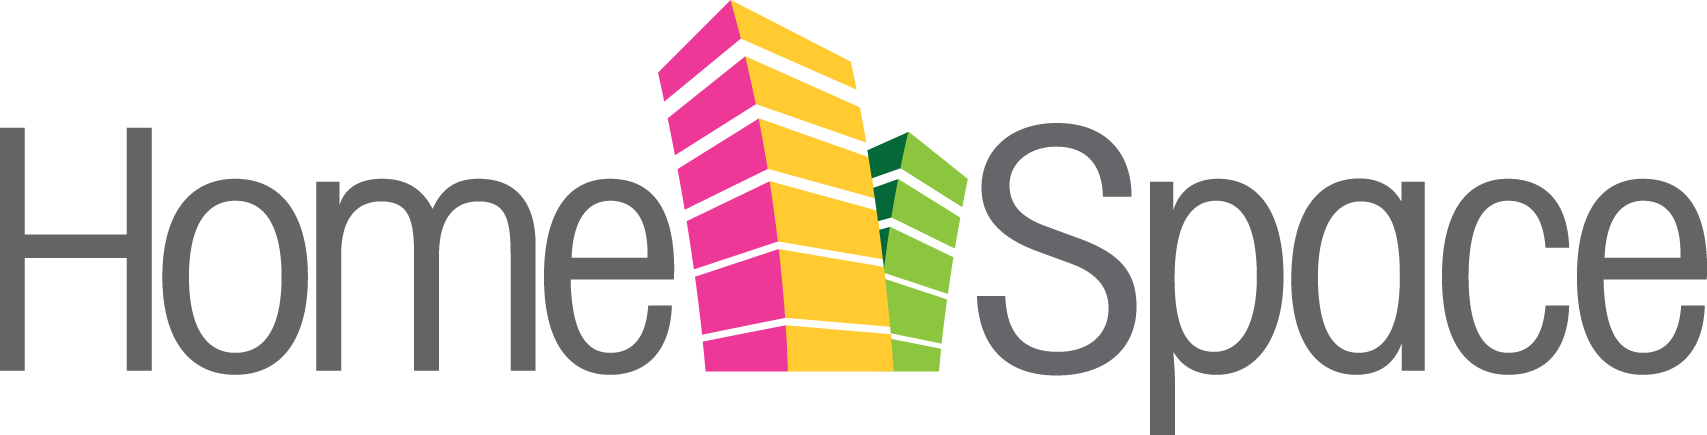 15 - homespace logo.png